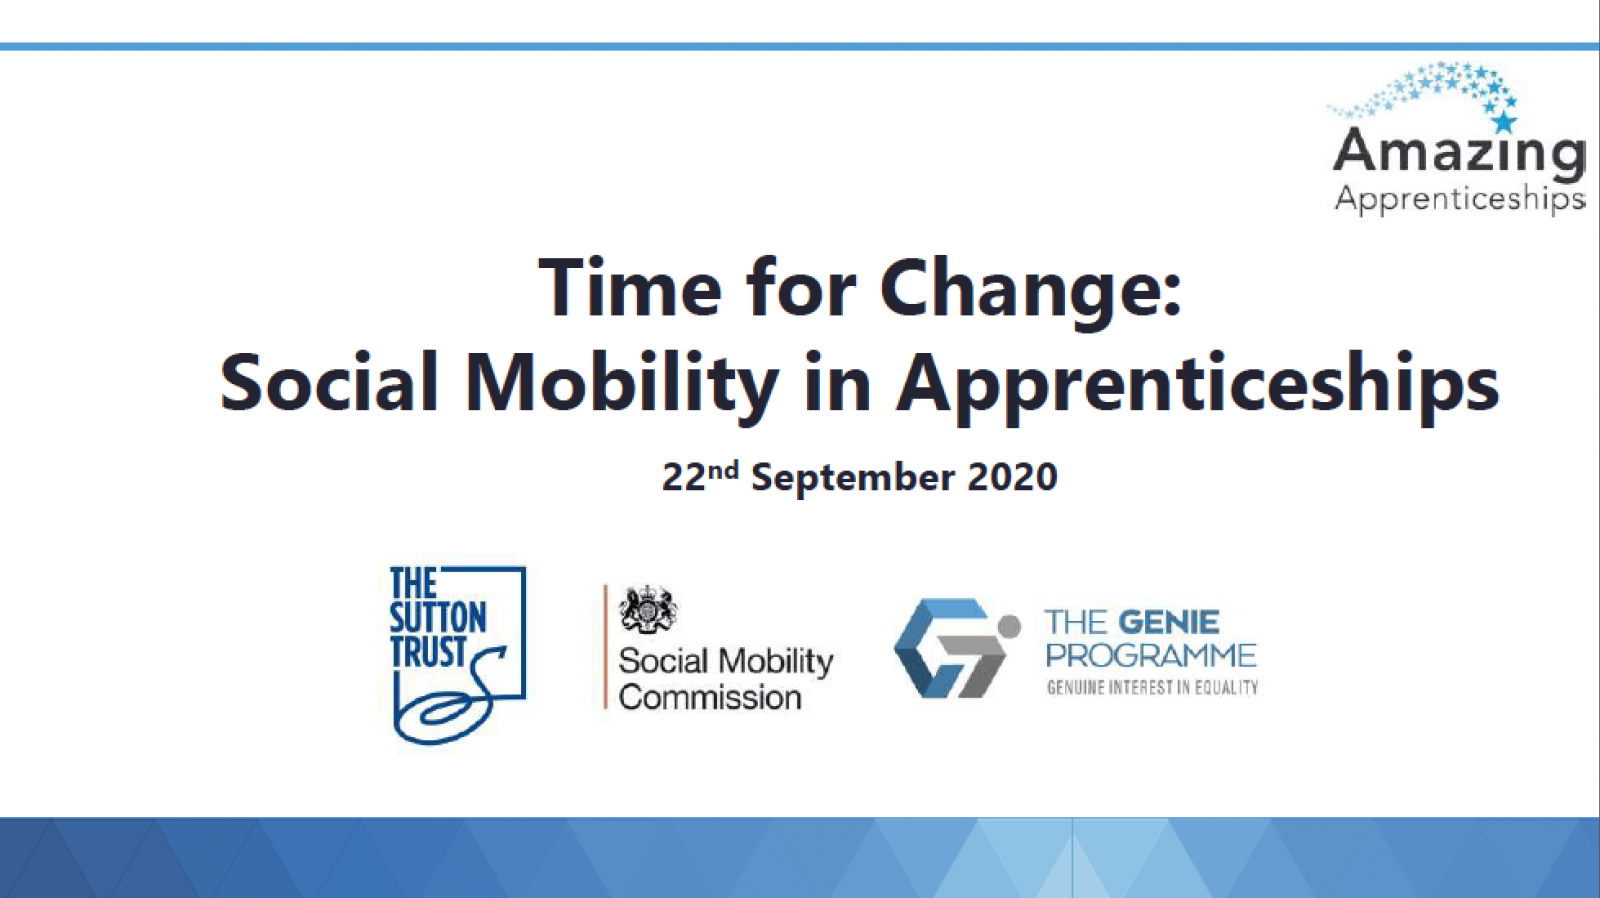 Time for Change: Social Mobility in Apprenticeships workshop slides